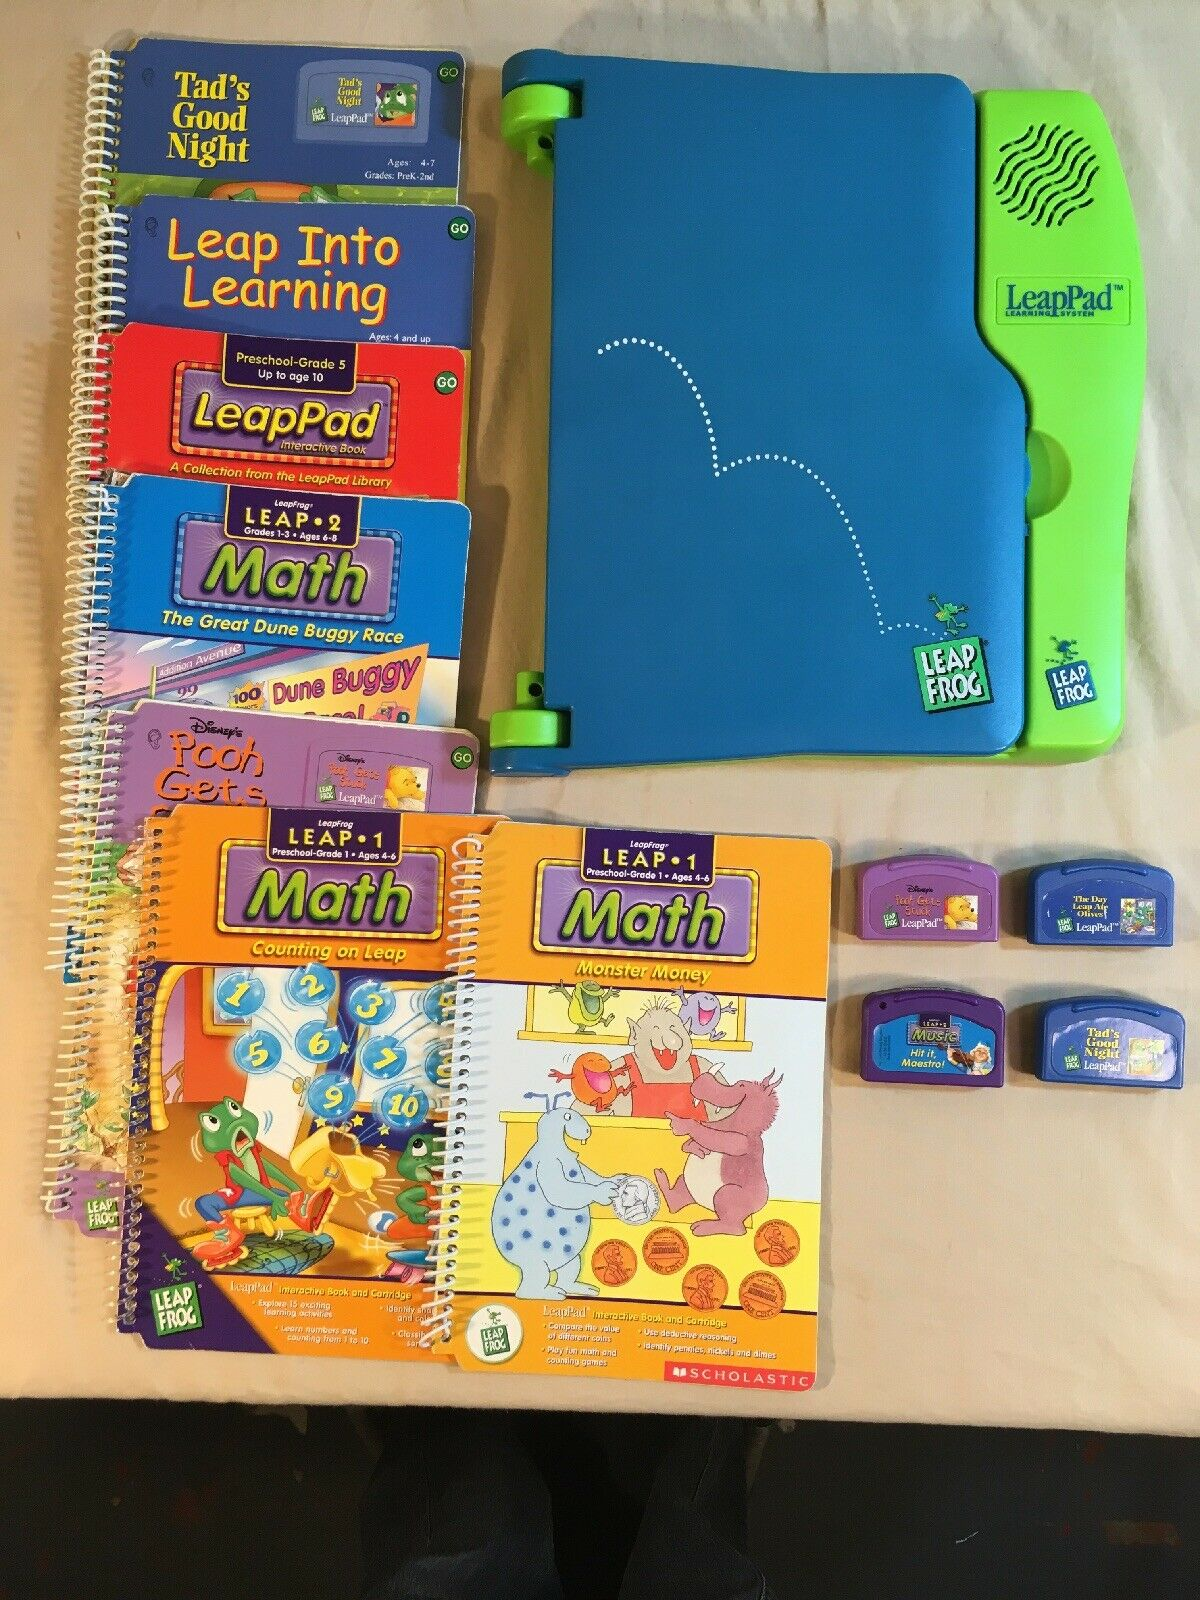 Leap Pad Leap Frog Learning System Set 7 Books 4 Cartriges - Ages 4-10 - Works